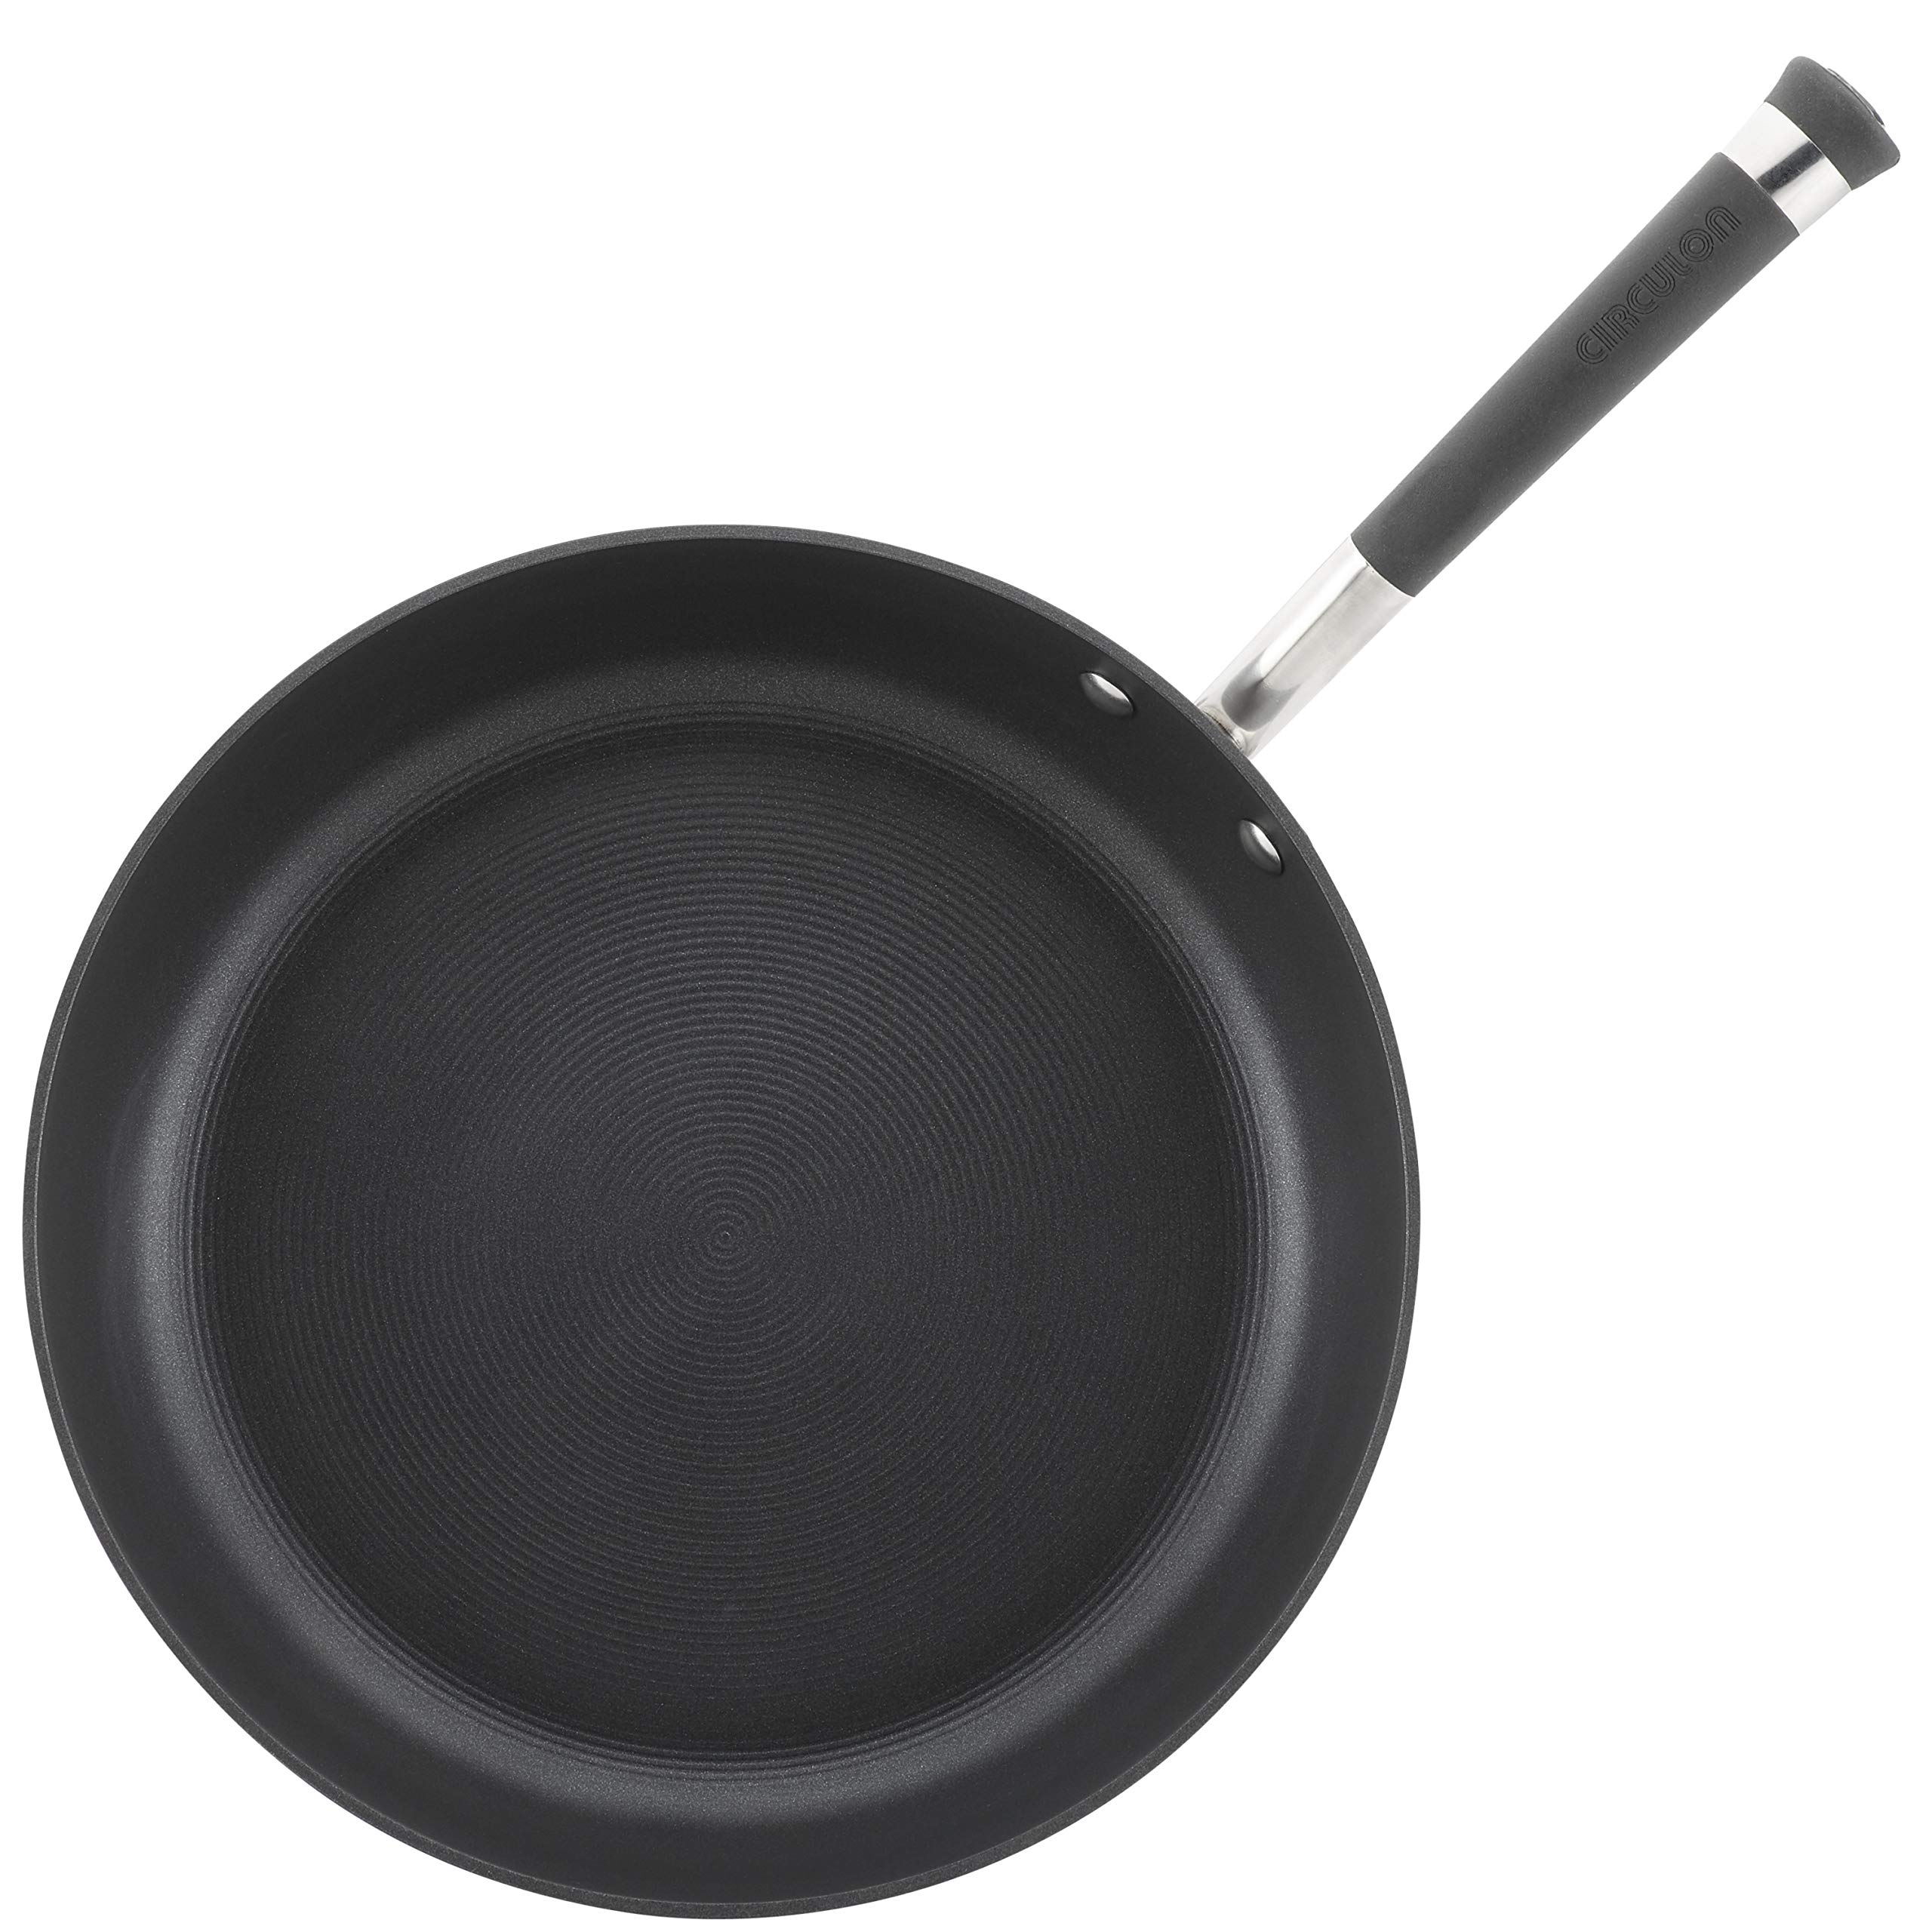 Circulon Acclaim Hard-Anodized Nonstick 12-Inch Covered Deep Skillet, Black by Circulon (Image #3)